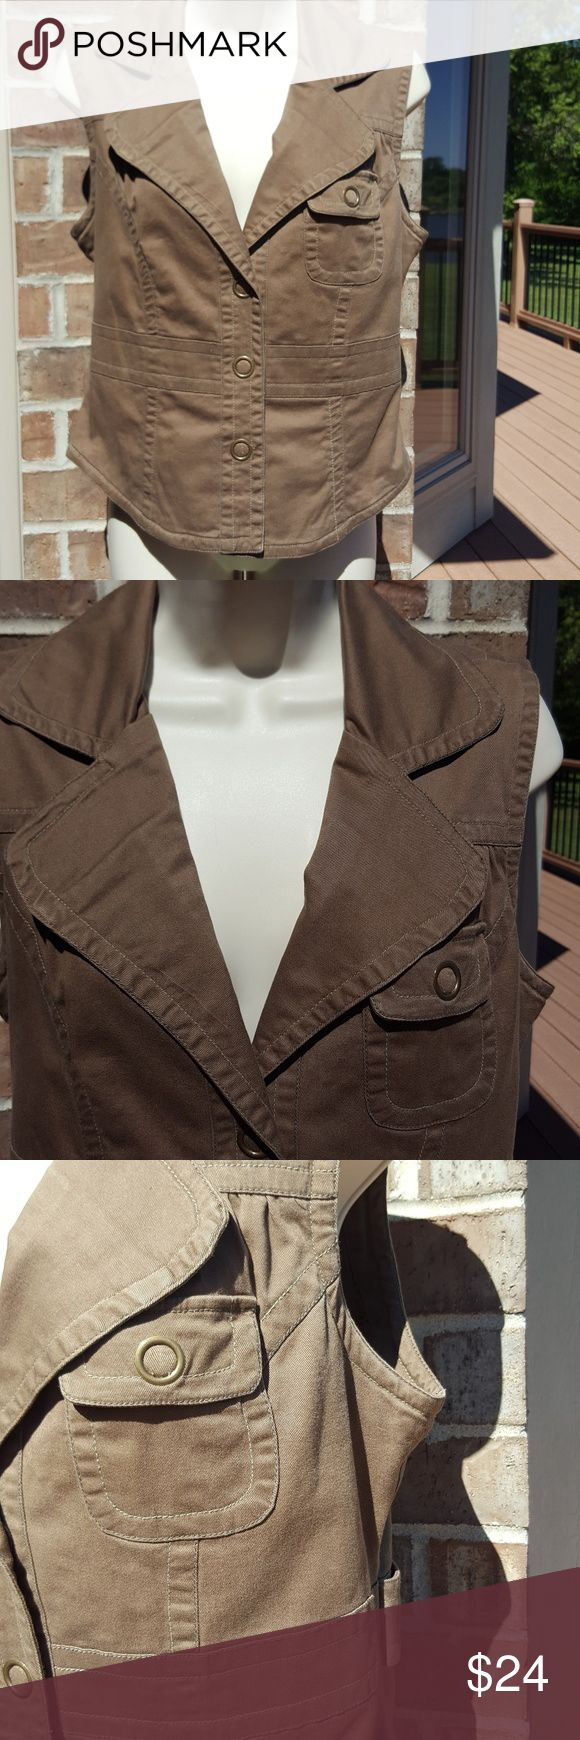 """Tulle brand khaki vest Tulle brand khaki/ brown vest, size XL, 100% cotton, stunning details front and back,  18 3/4"""" bust closed laying flat,  21"""" length,  lining is a cute pattern 100% cotton  See picture #5, closures are snaps,  EUC,  smoke free home Tulle Jackets & Coats Vests"""